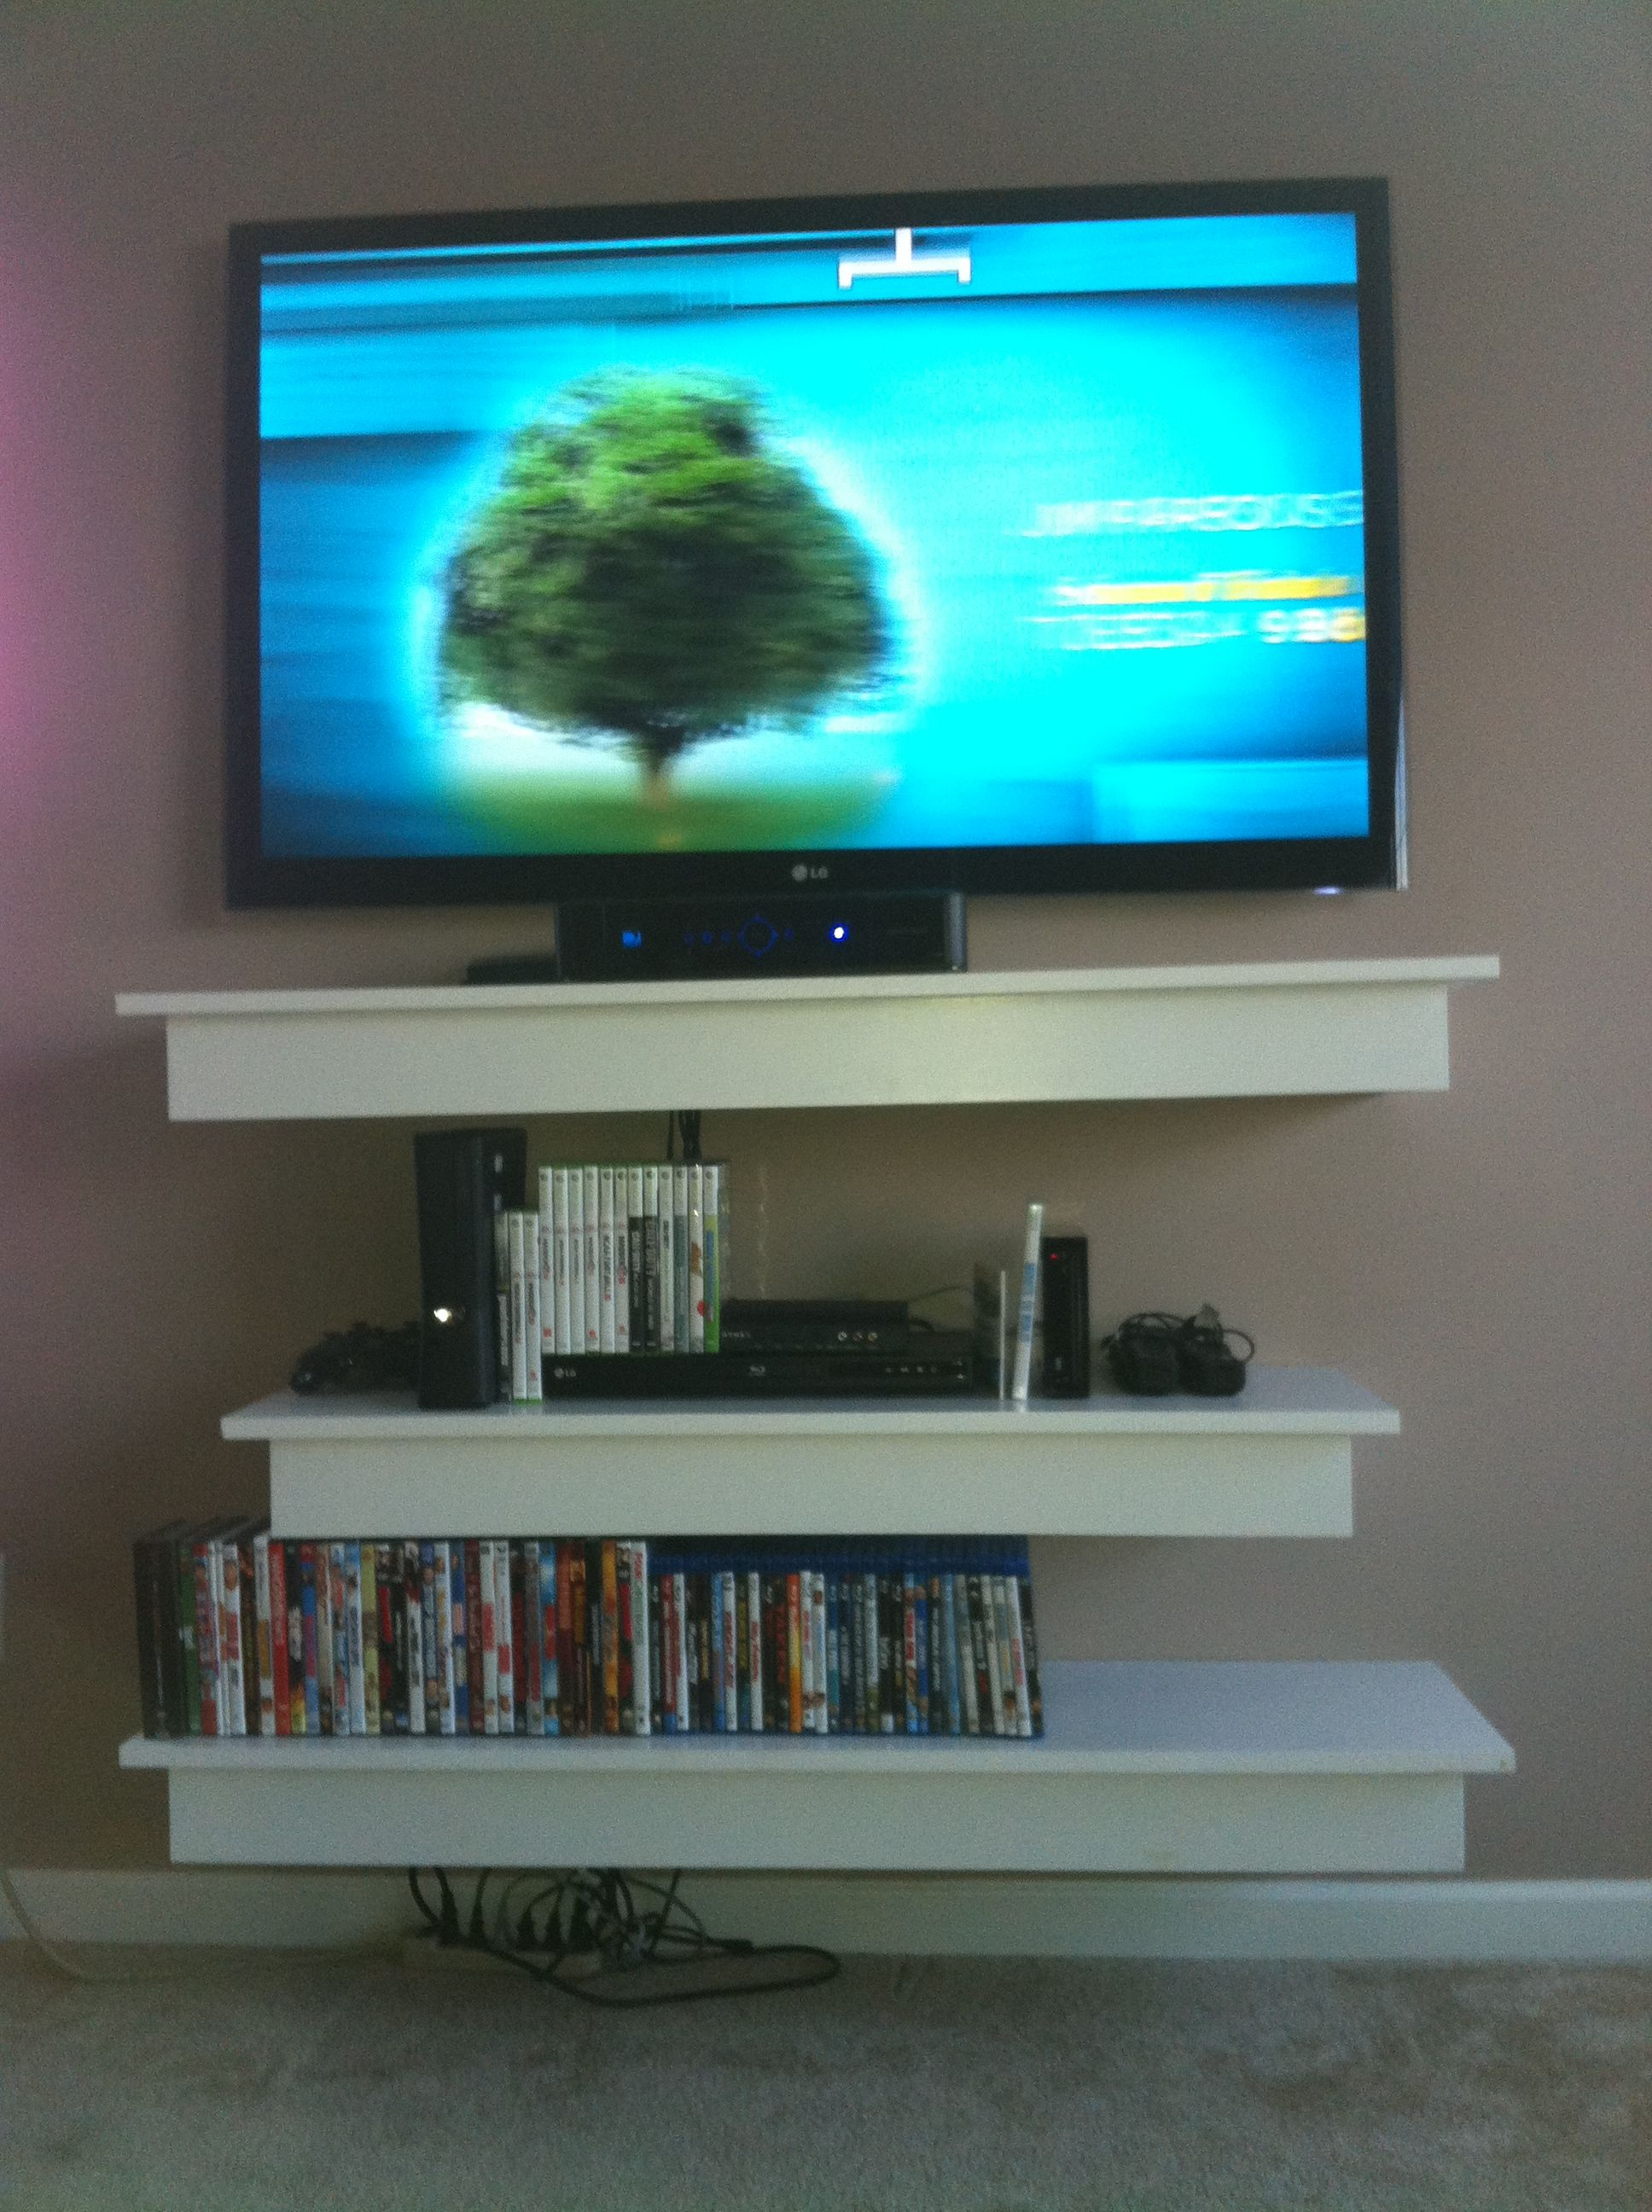 diy floating shelves under home decor wood shelf for cable box ikea metal bookshelf cube sky wall decals target baby pink glass bathroom table inexpensive desk with drawers closet